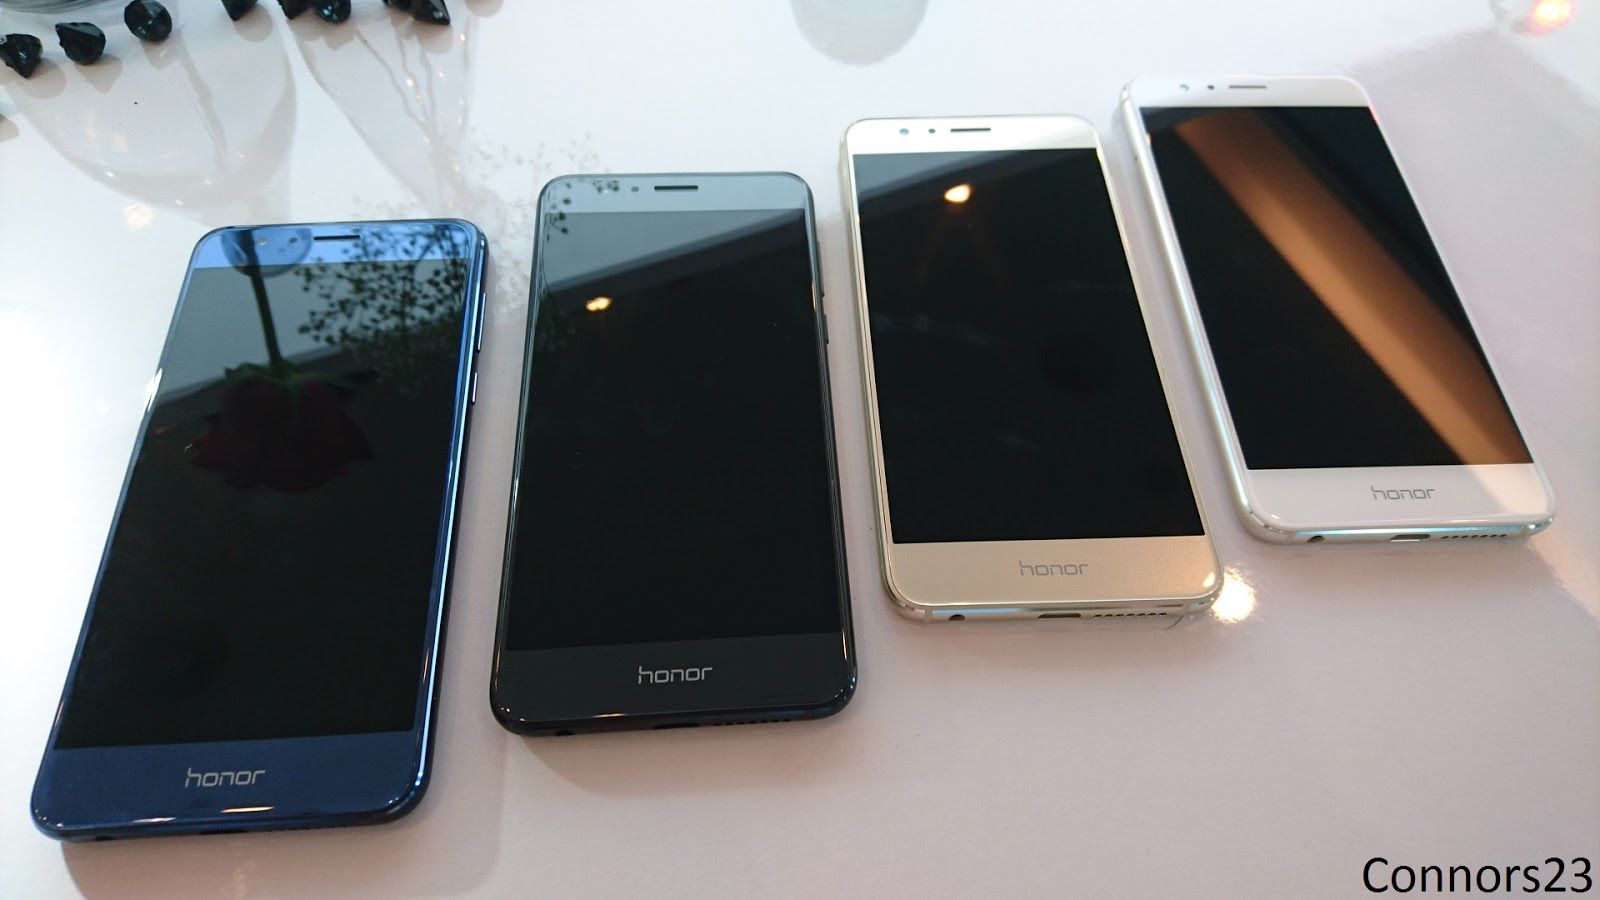 Connors23 | Tech & Gadgets: Honor 8 Has Officially Landed in Malaysia